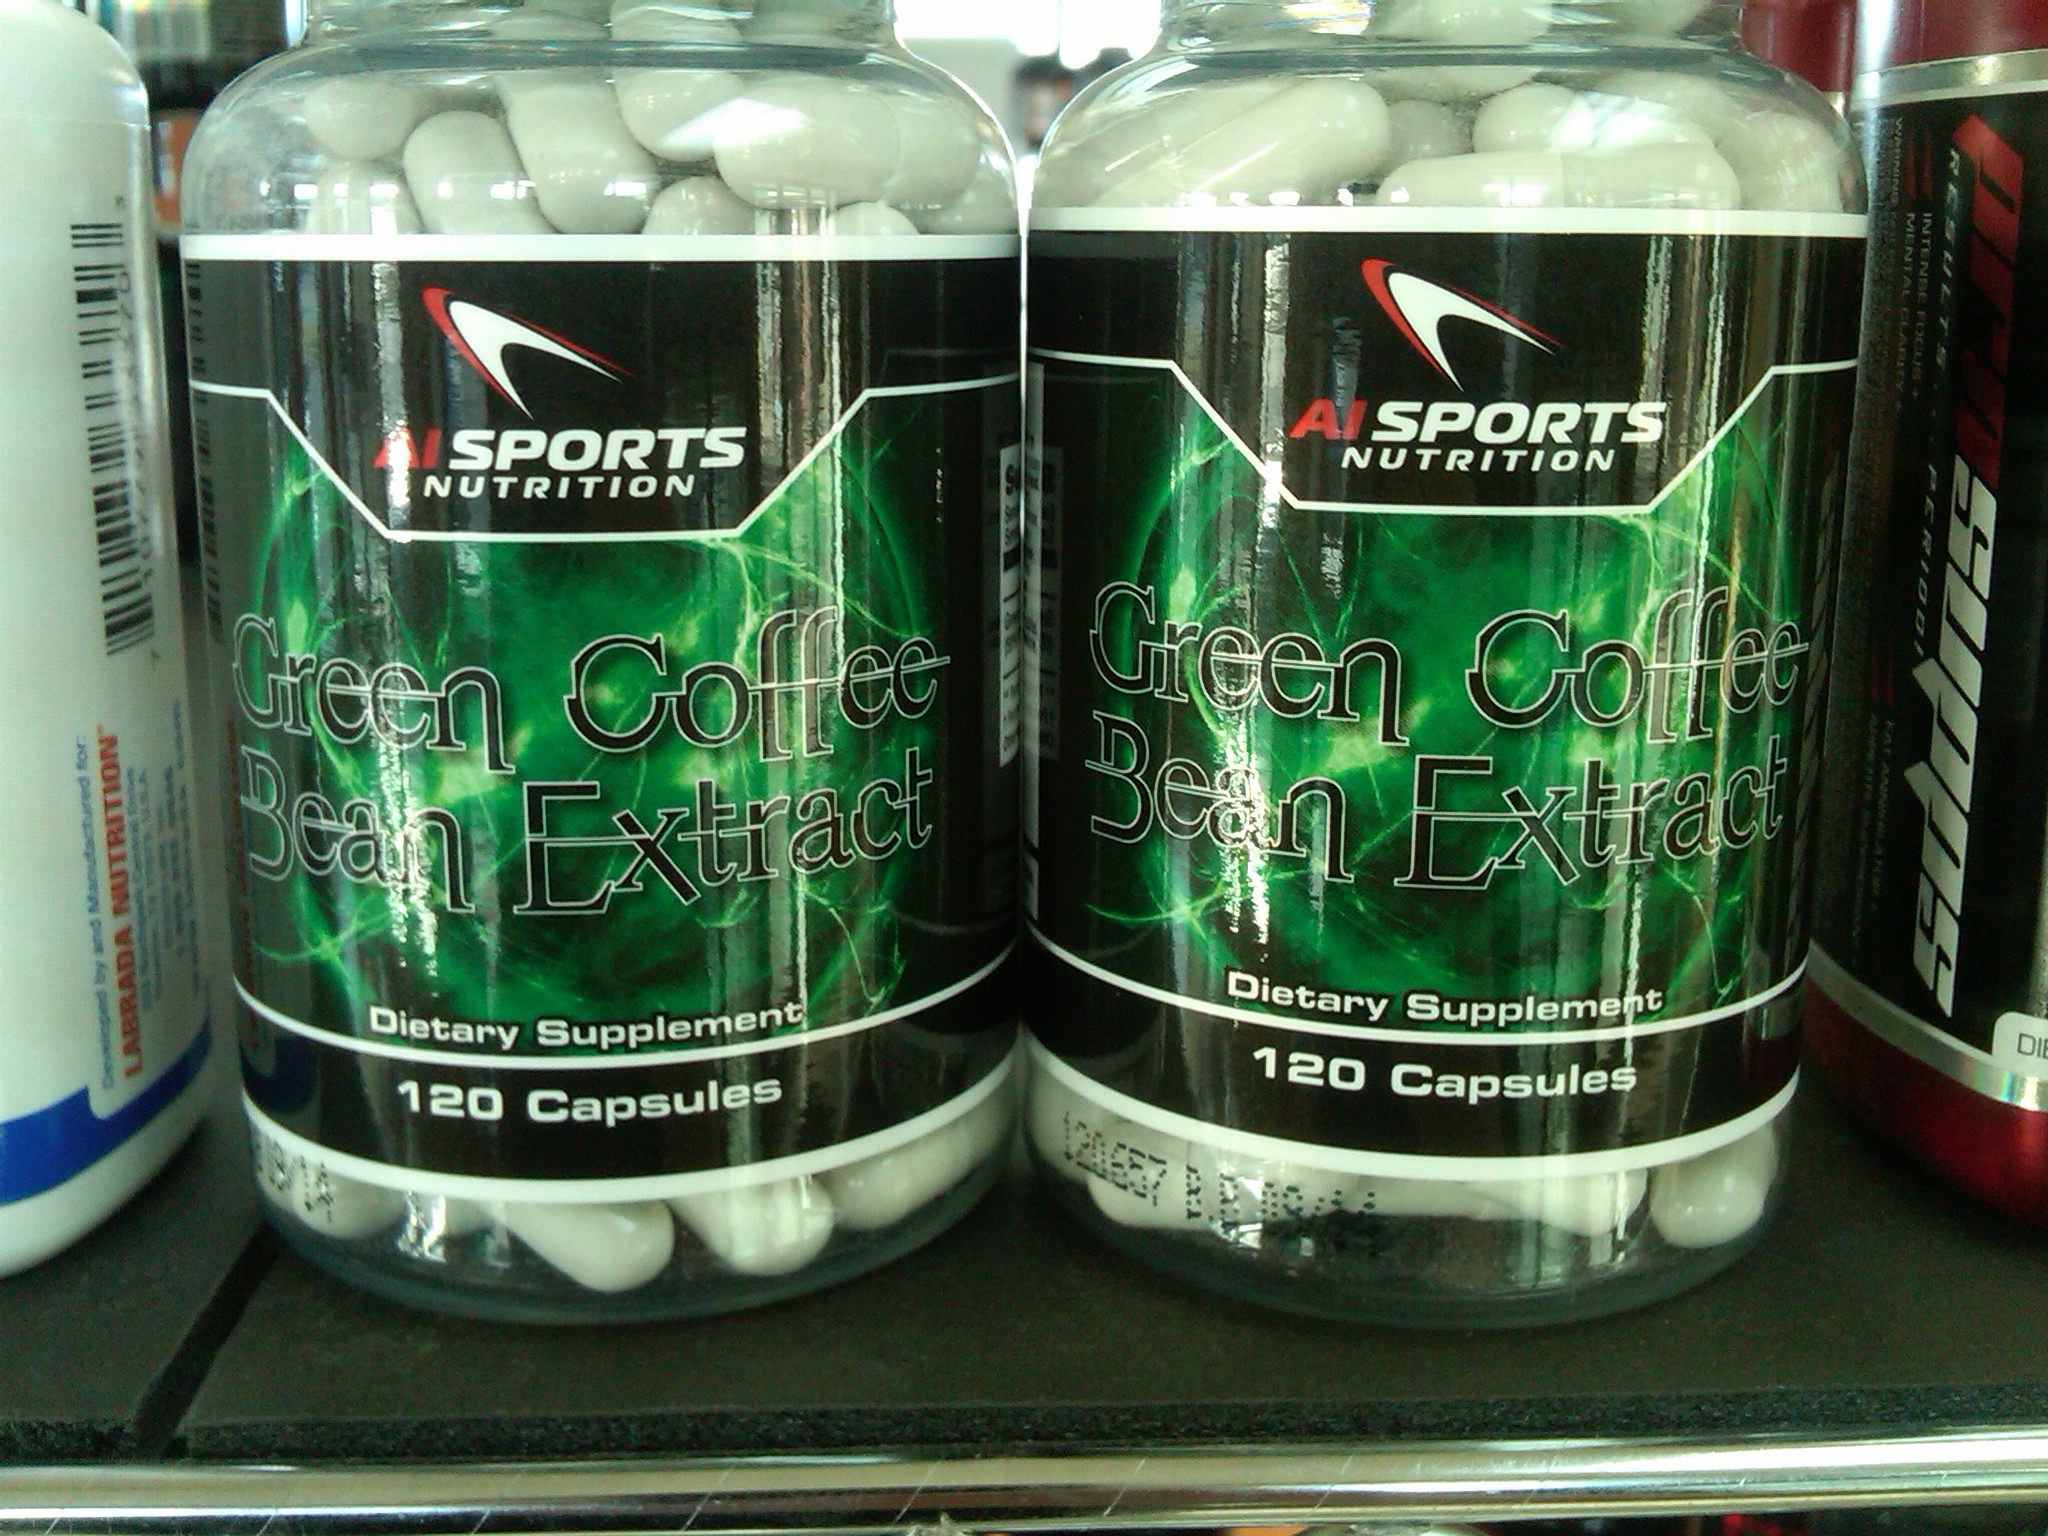 Side Effects Green Coffee Extract We Will Send Your Free Bottle For Your Perfect Shape In 1 Month